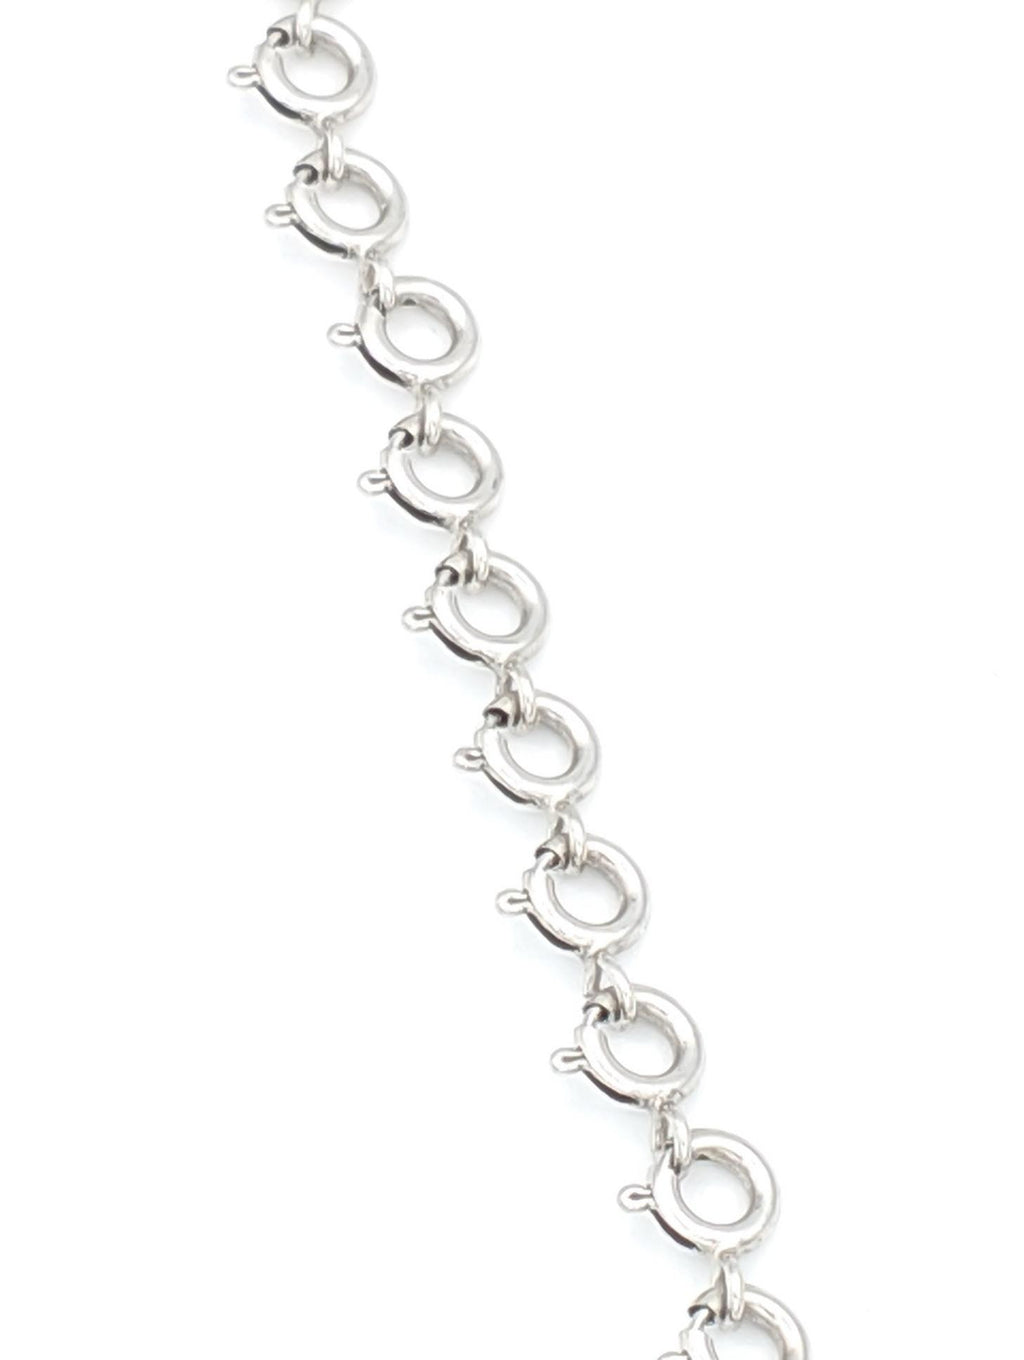 White Gold Spring Clasp Necklace